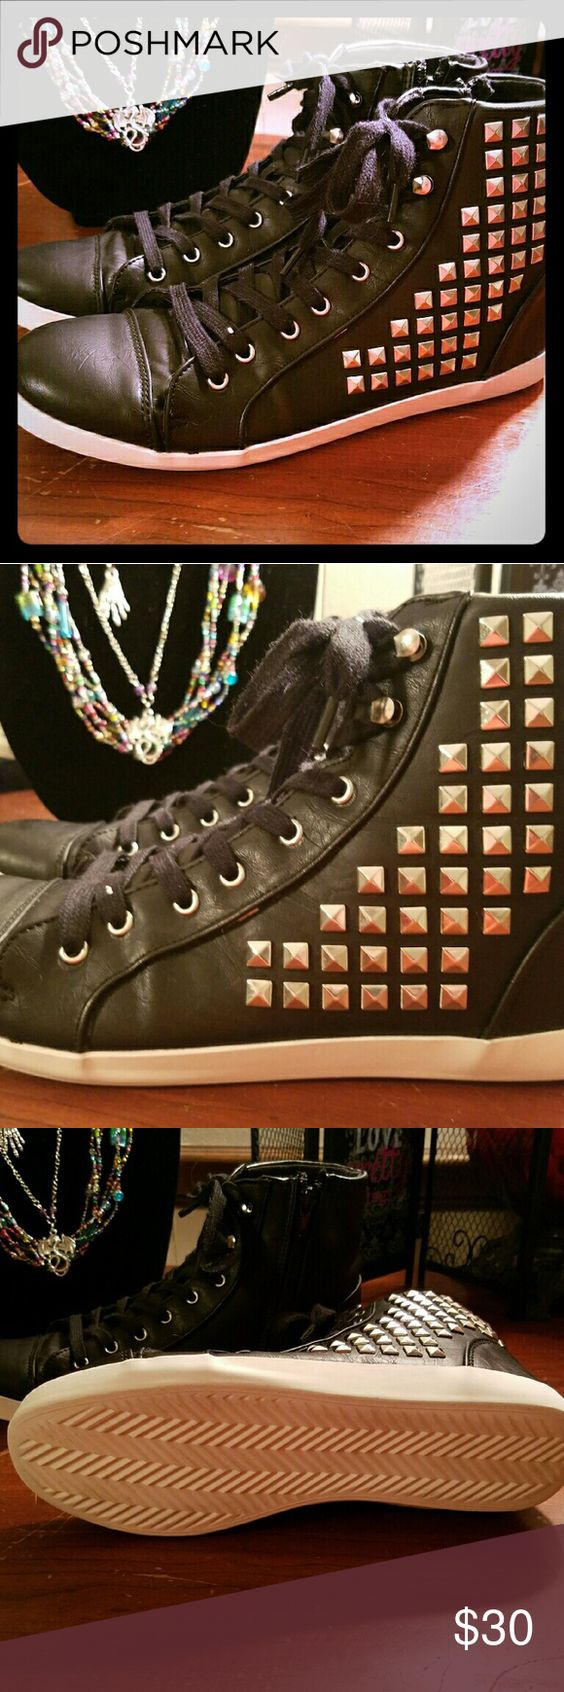 Studded high tops Leather studded High tops. Worn twice then stored. It is missing 1 of the silver studs. Other than that they are in perfect condtion. Purchased Kohls online. They are considered unisex. Sugar  Shoes